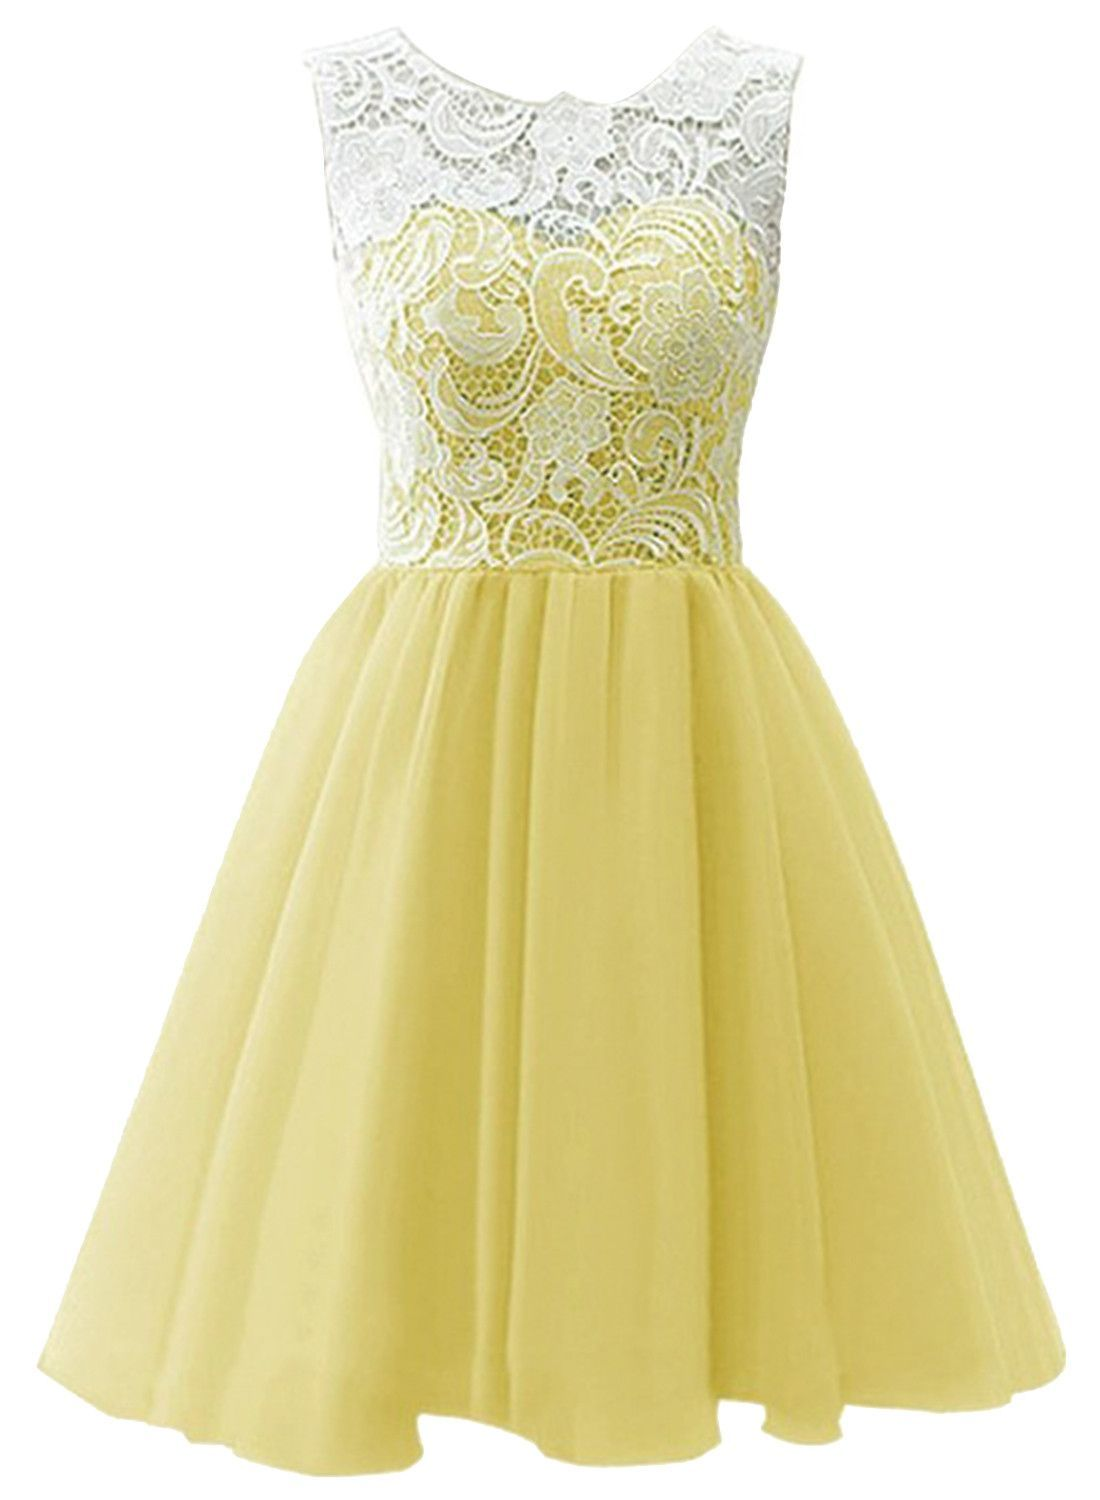 Cocktail dress wedding  PreOrder Yellow Lacy Paneled Homecoming Dress  Homecoming dresses